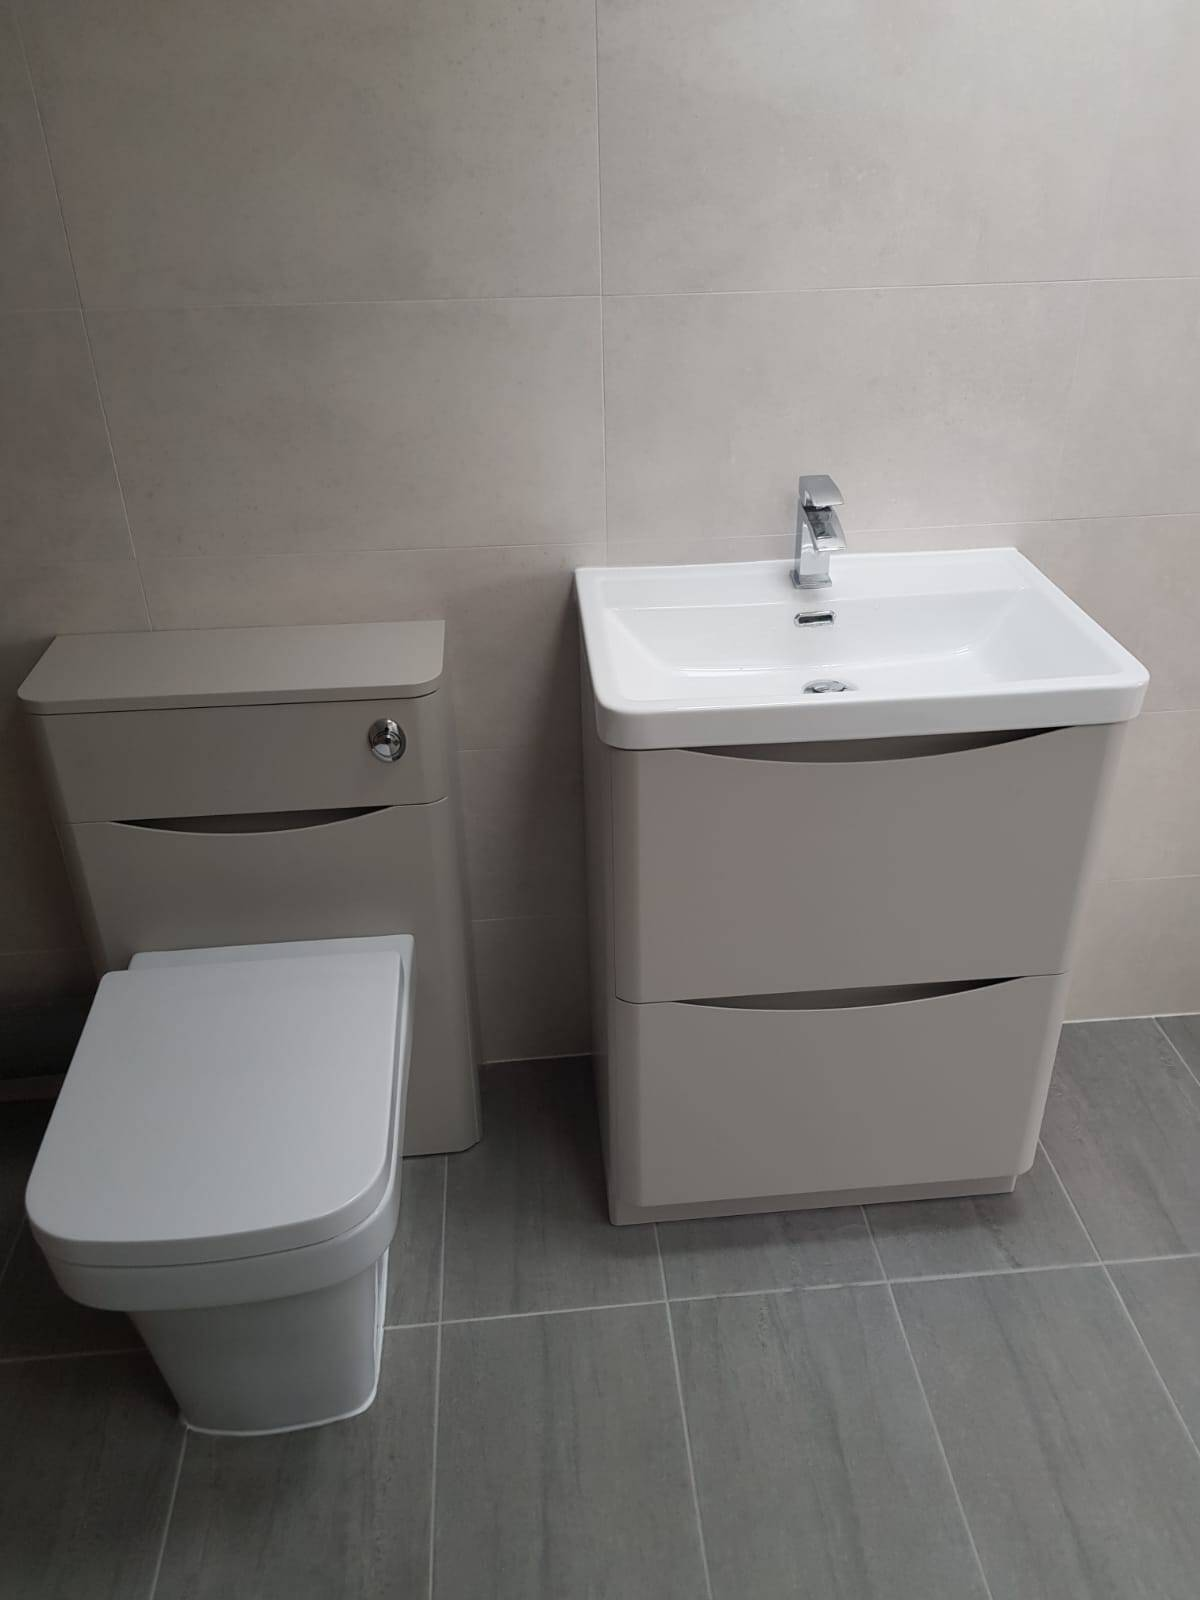 En-suite fitting Bromsgrove